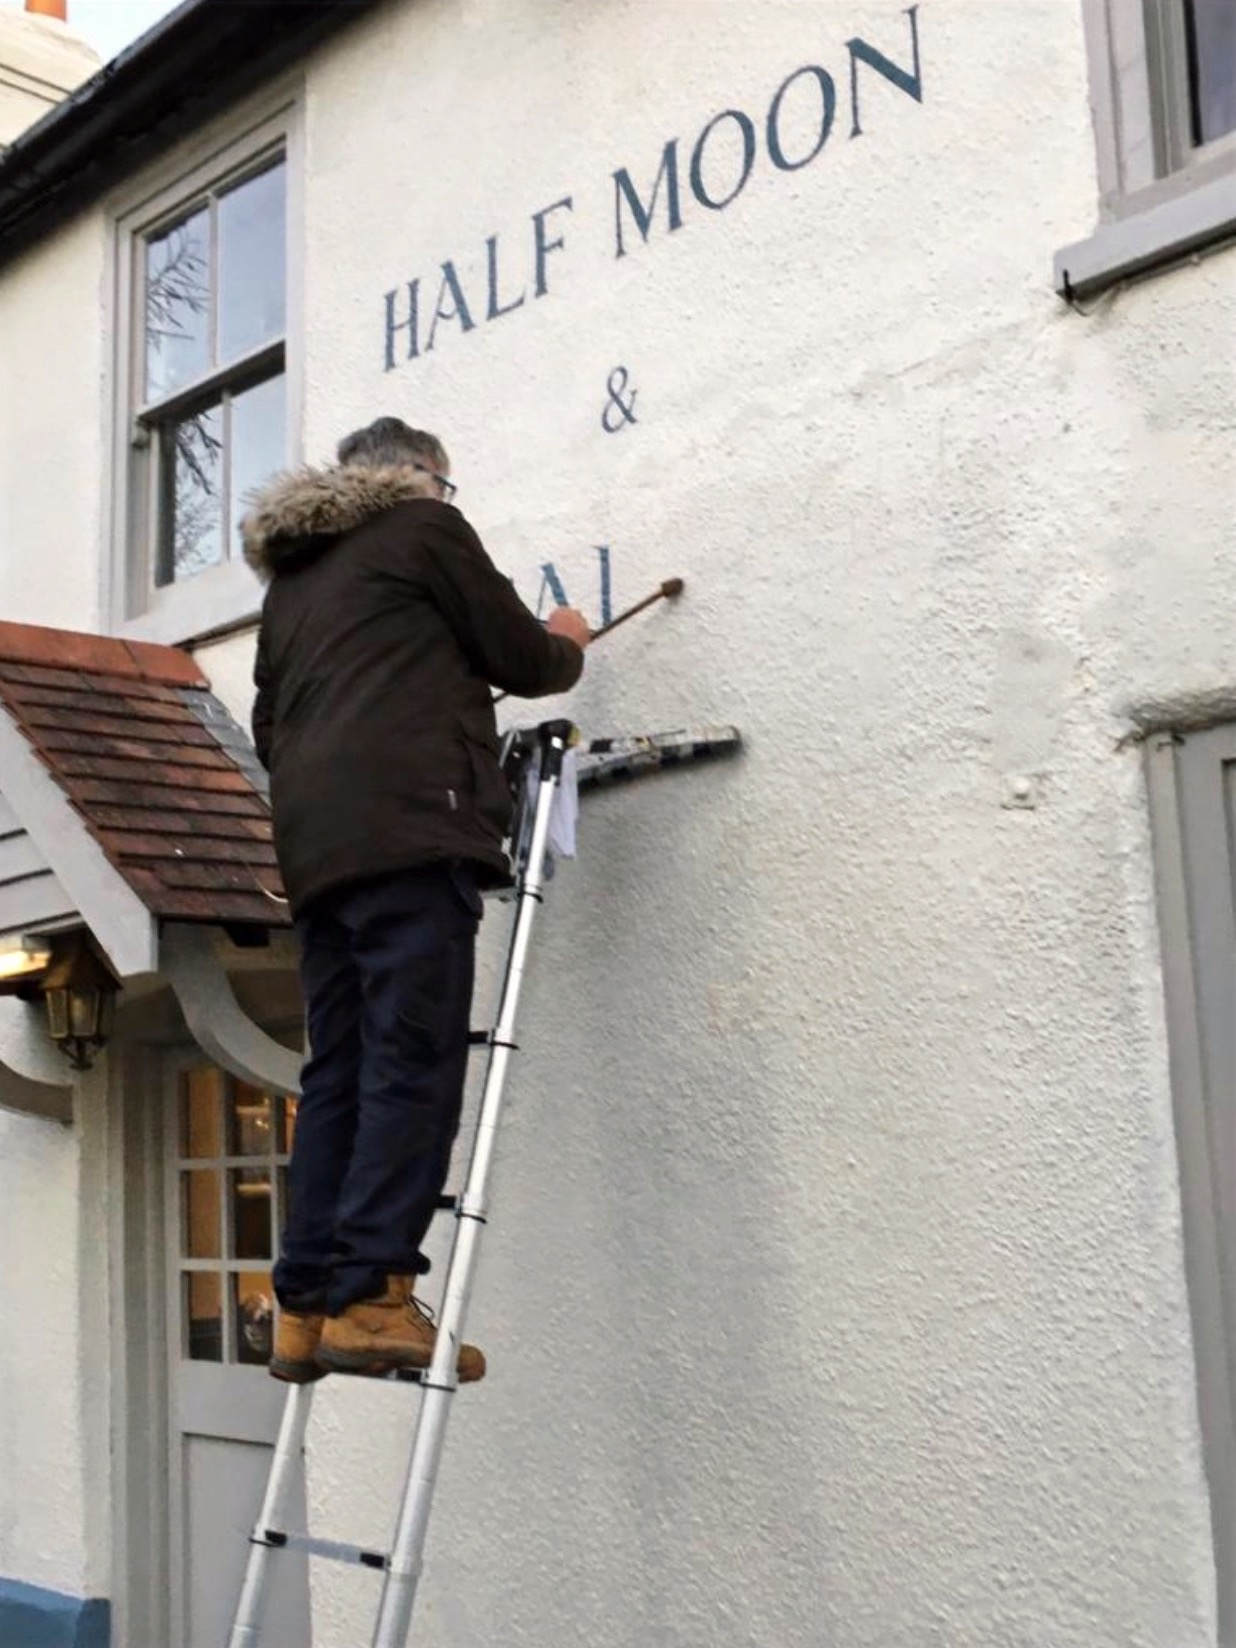 Sign Writing on Newly Painted walls